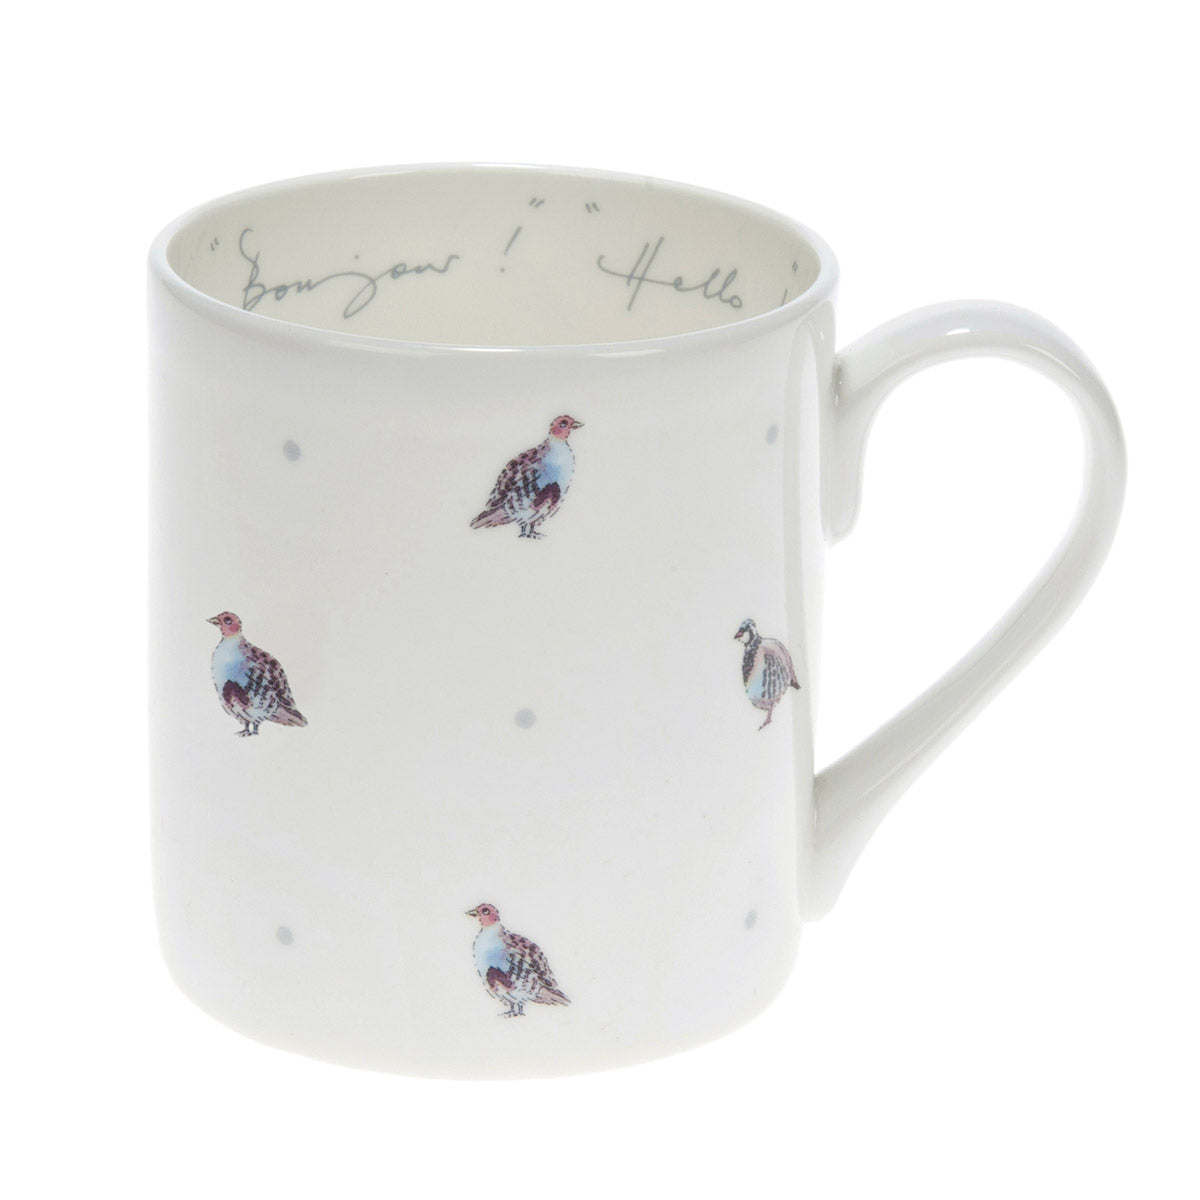 Bonjour! Hello! Partridge & Dot Mug